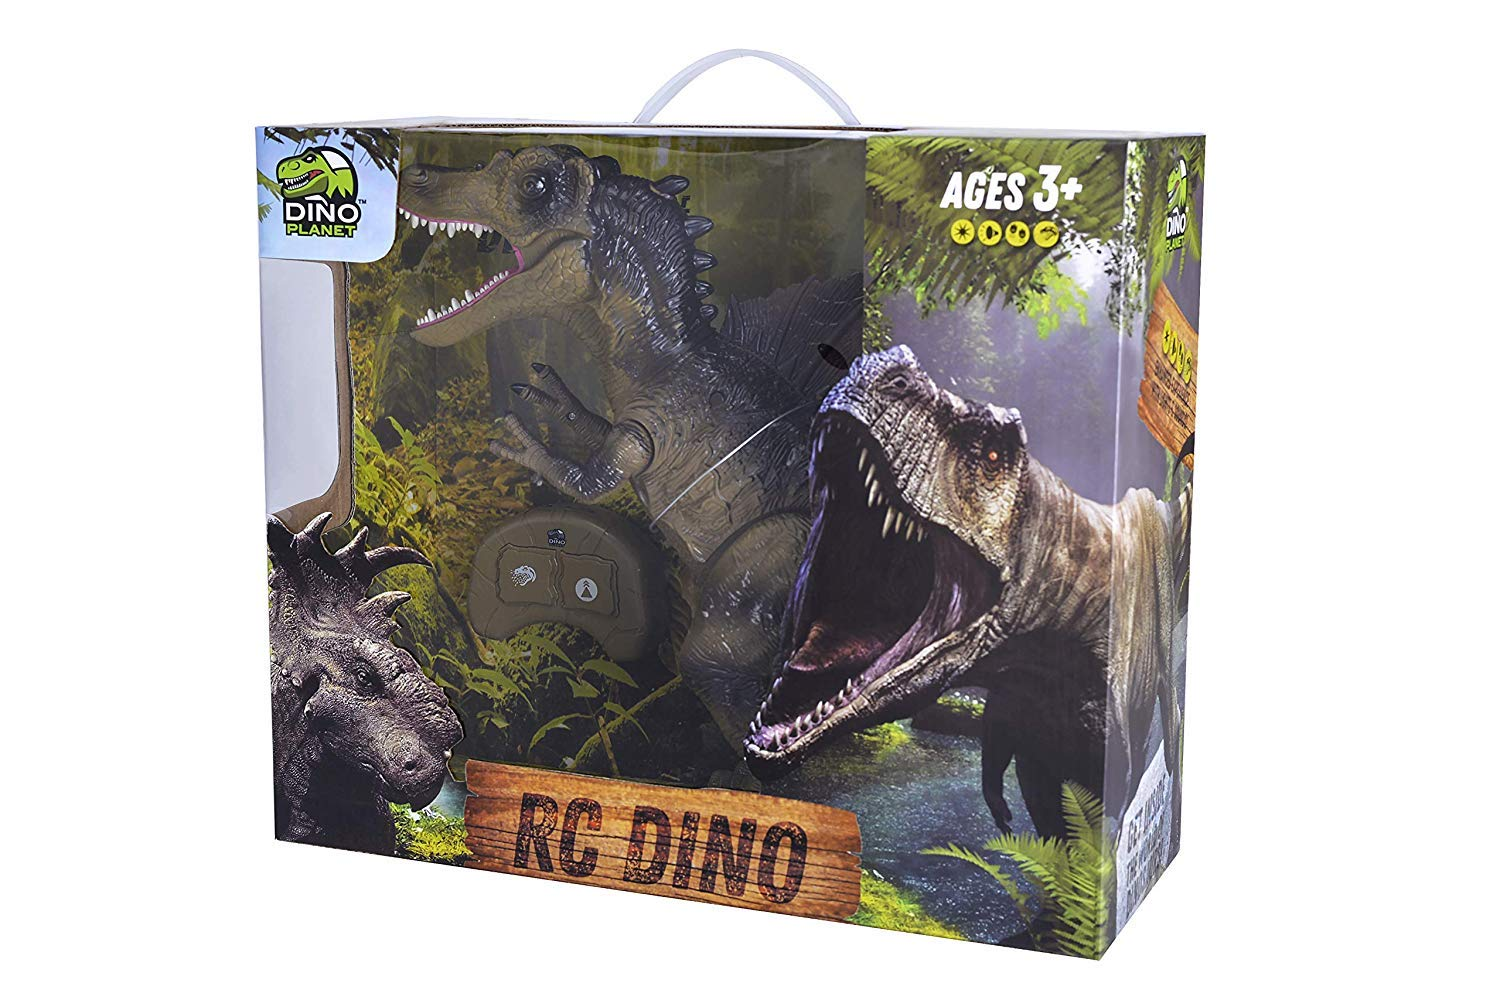 Build Me Remote Control Dinosaur Toy for Kids with Roaring Sounds and Smoking Breath. RC Spinosaurus Dino with Glowing Eyes, Walking Movement, Shaking Head. by Build Me (Image #7)